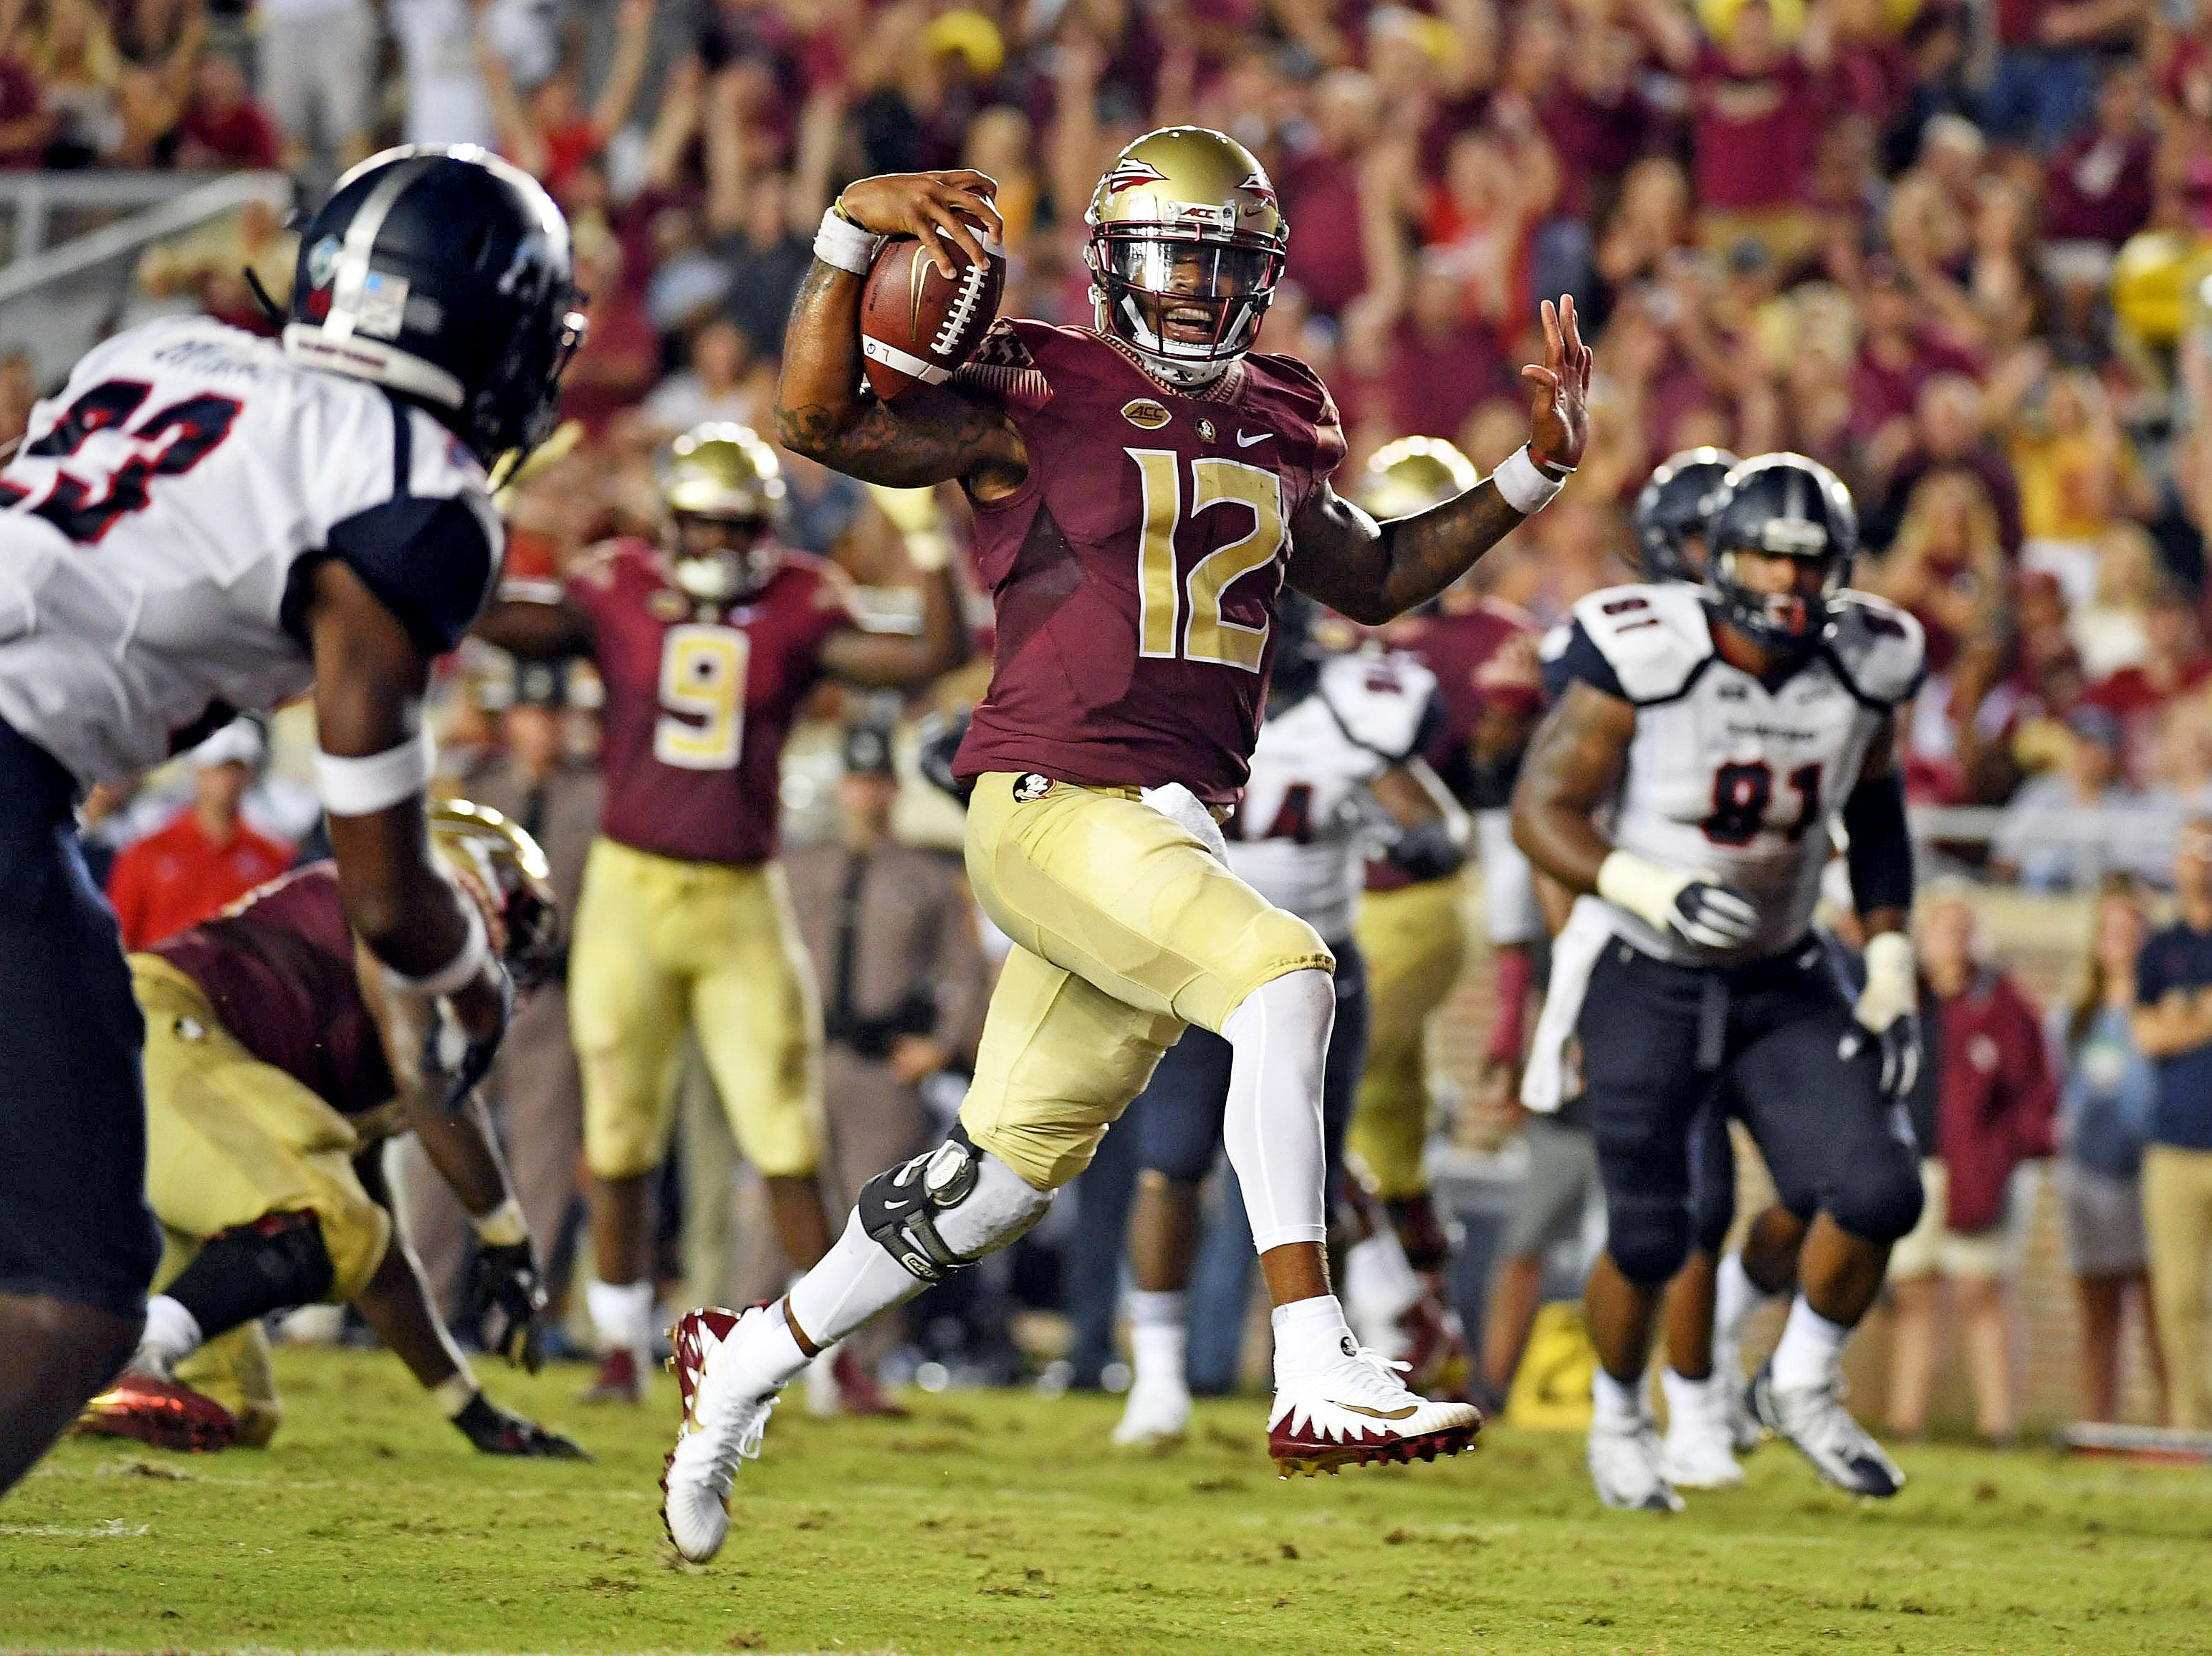 Florida State Seminoles quarterback Deondre Francois (12) runs for a touchdown in the first half against the Samford Bulldogs at Doak Campbell Stadium.